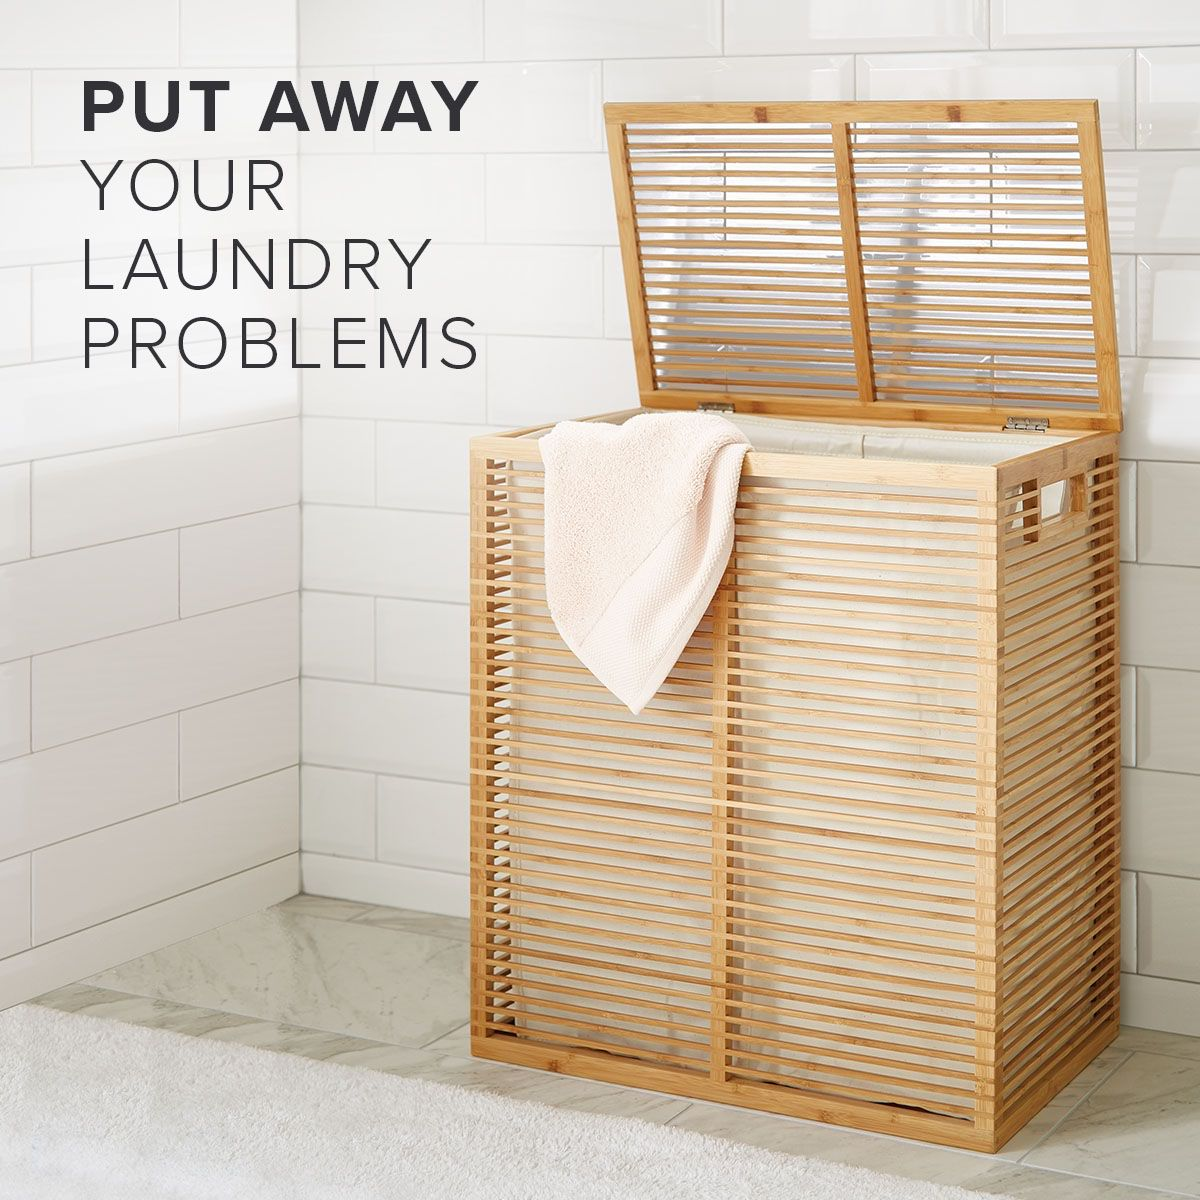 Laundry Baskets And Laundry Bags Help Make Light Work Of Sorting